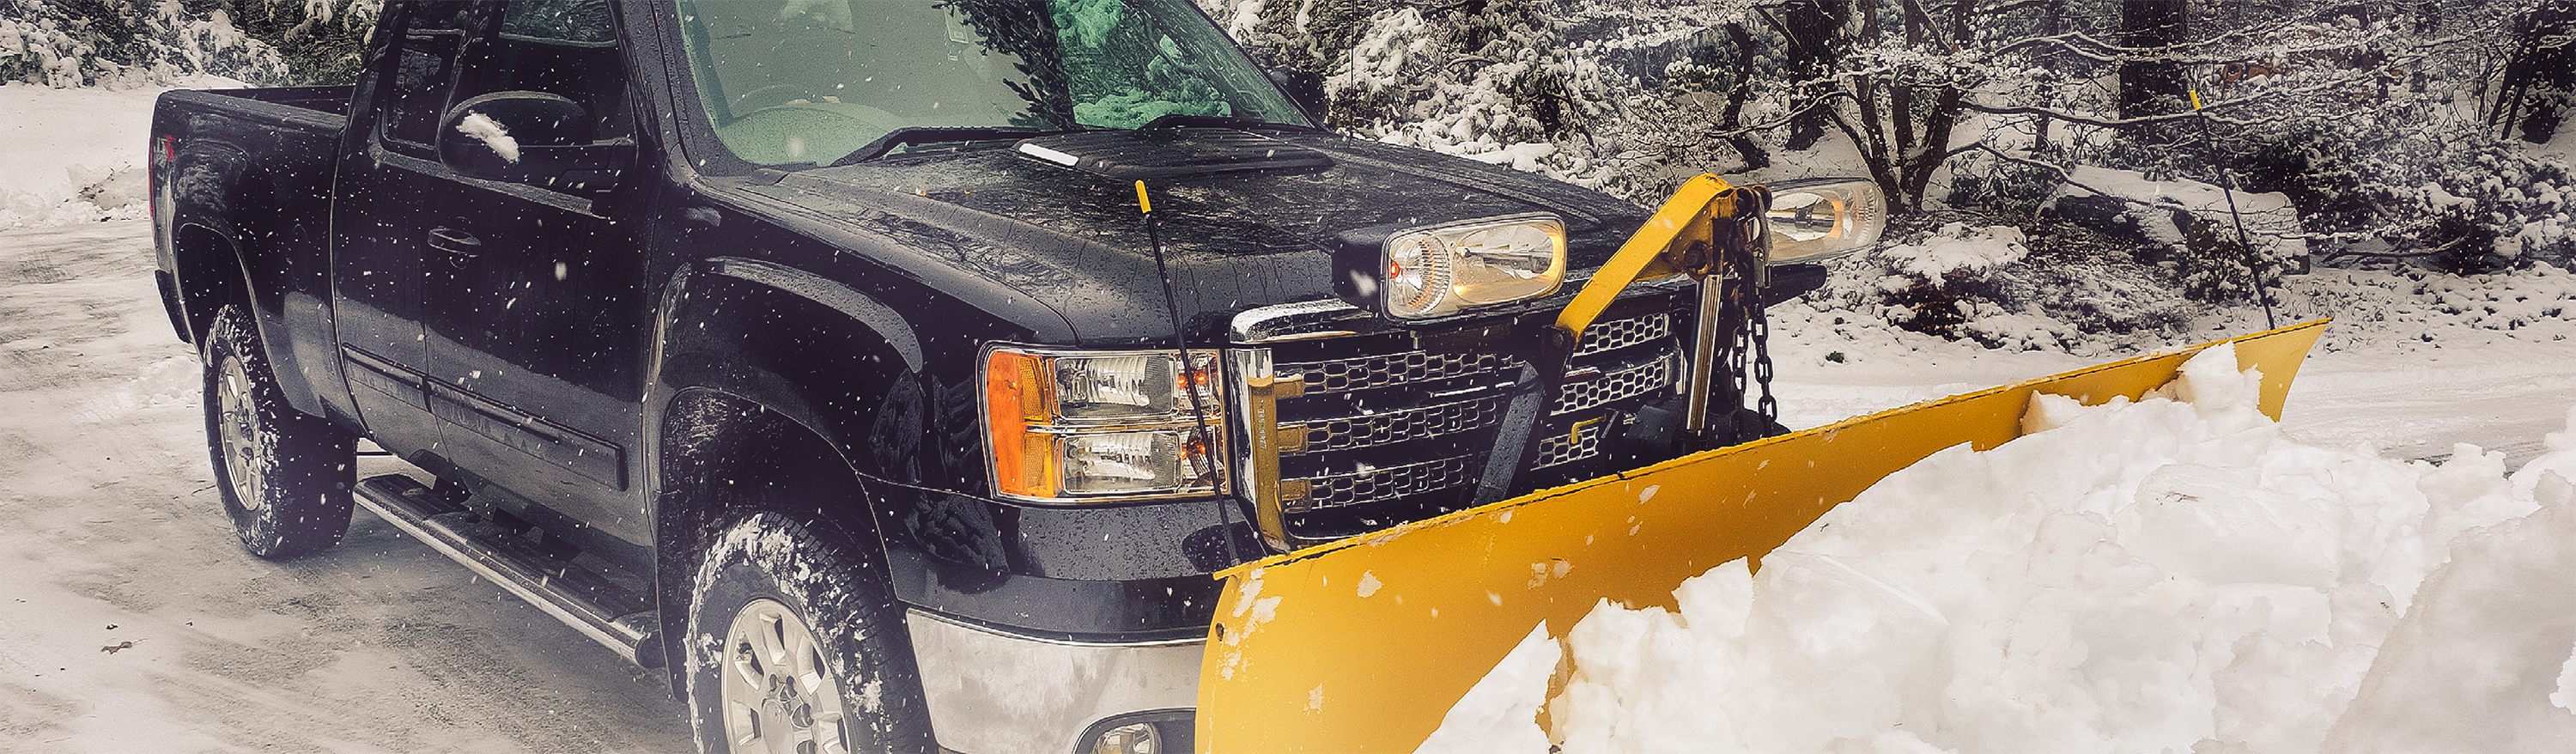 SnowPlow truck Photo